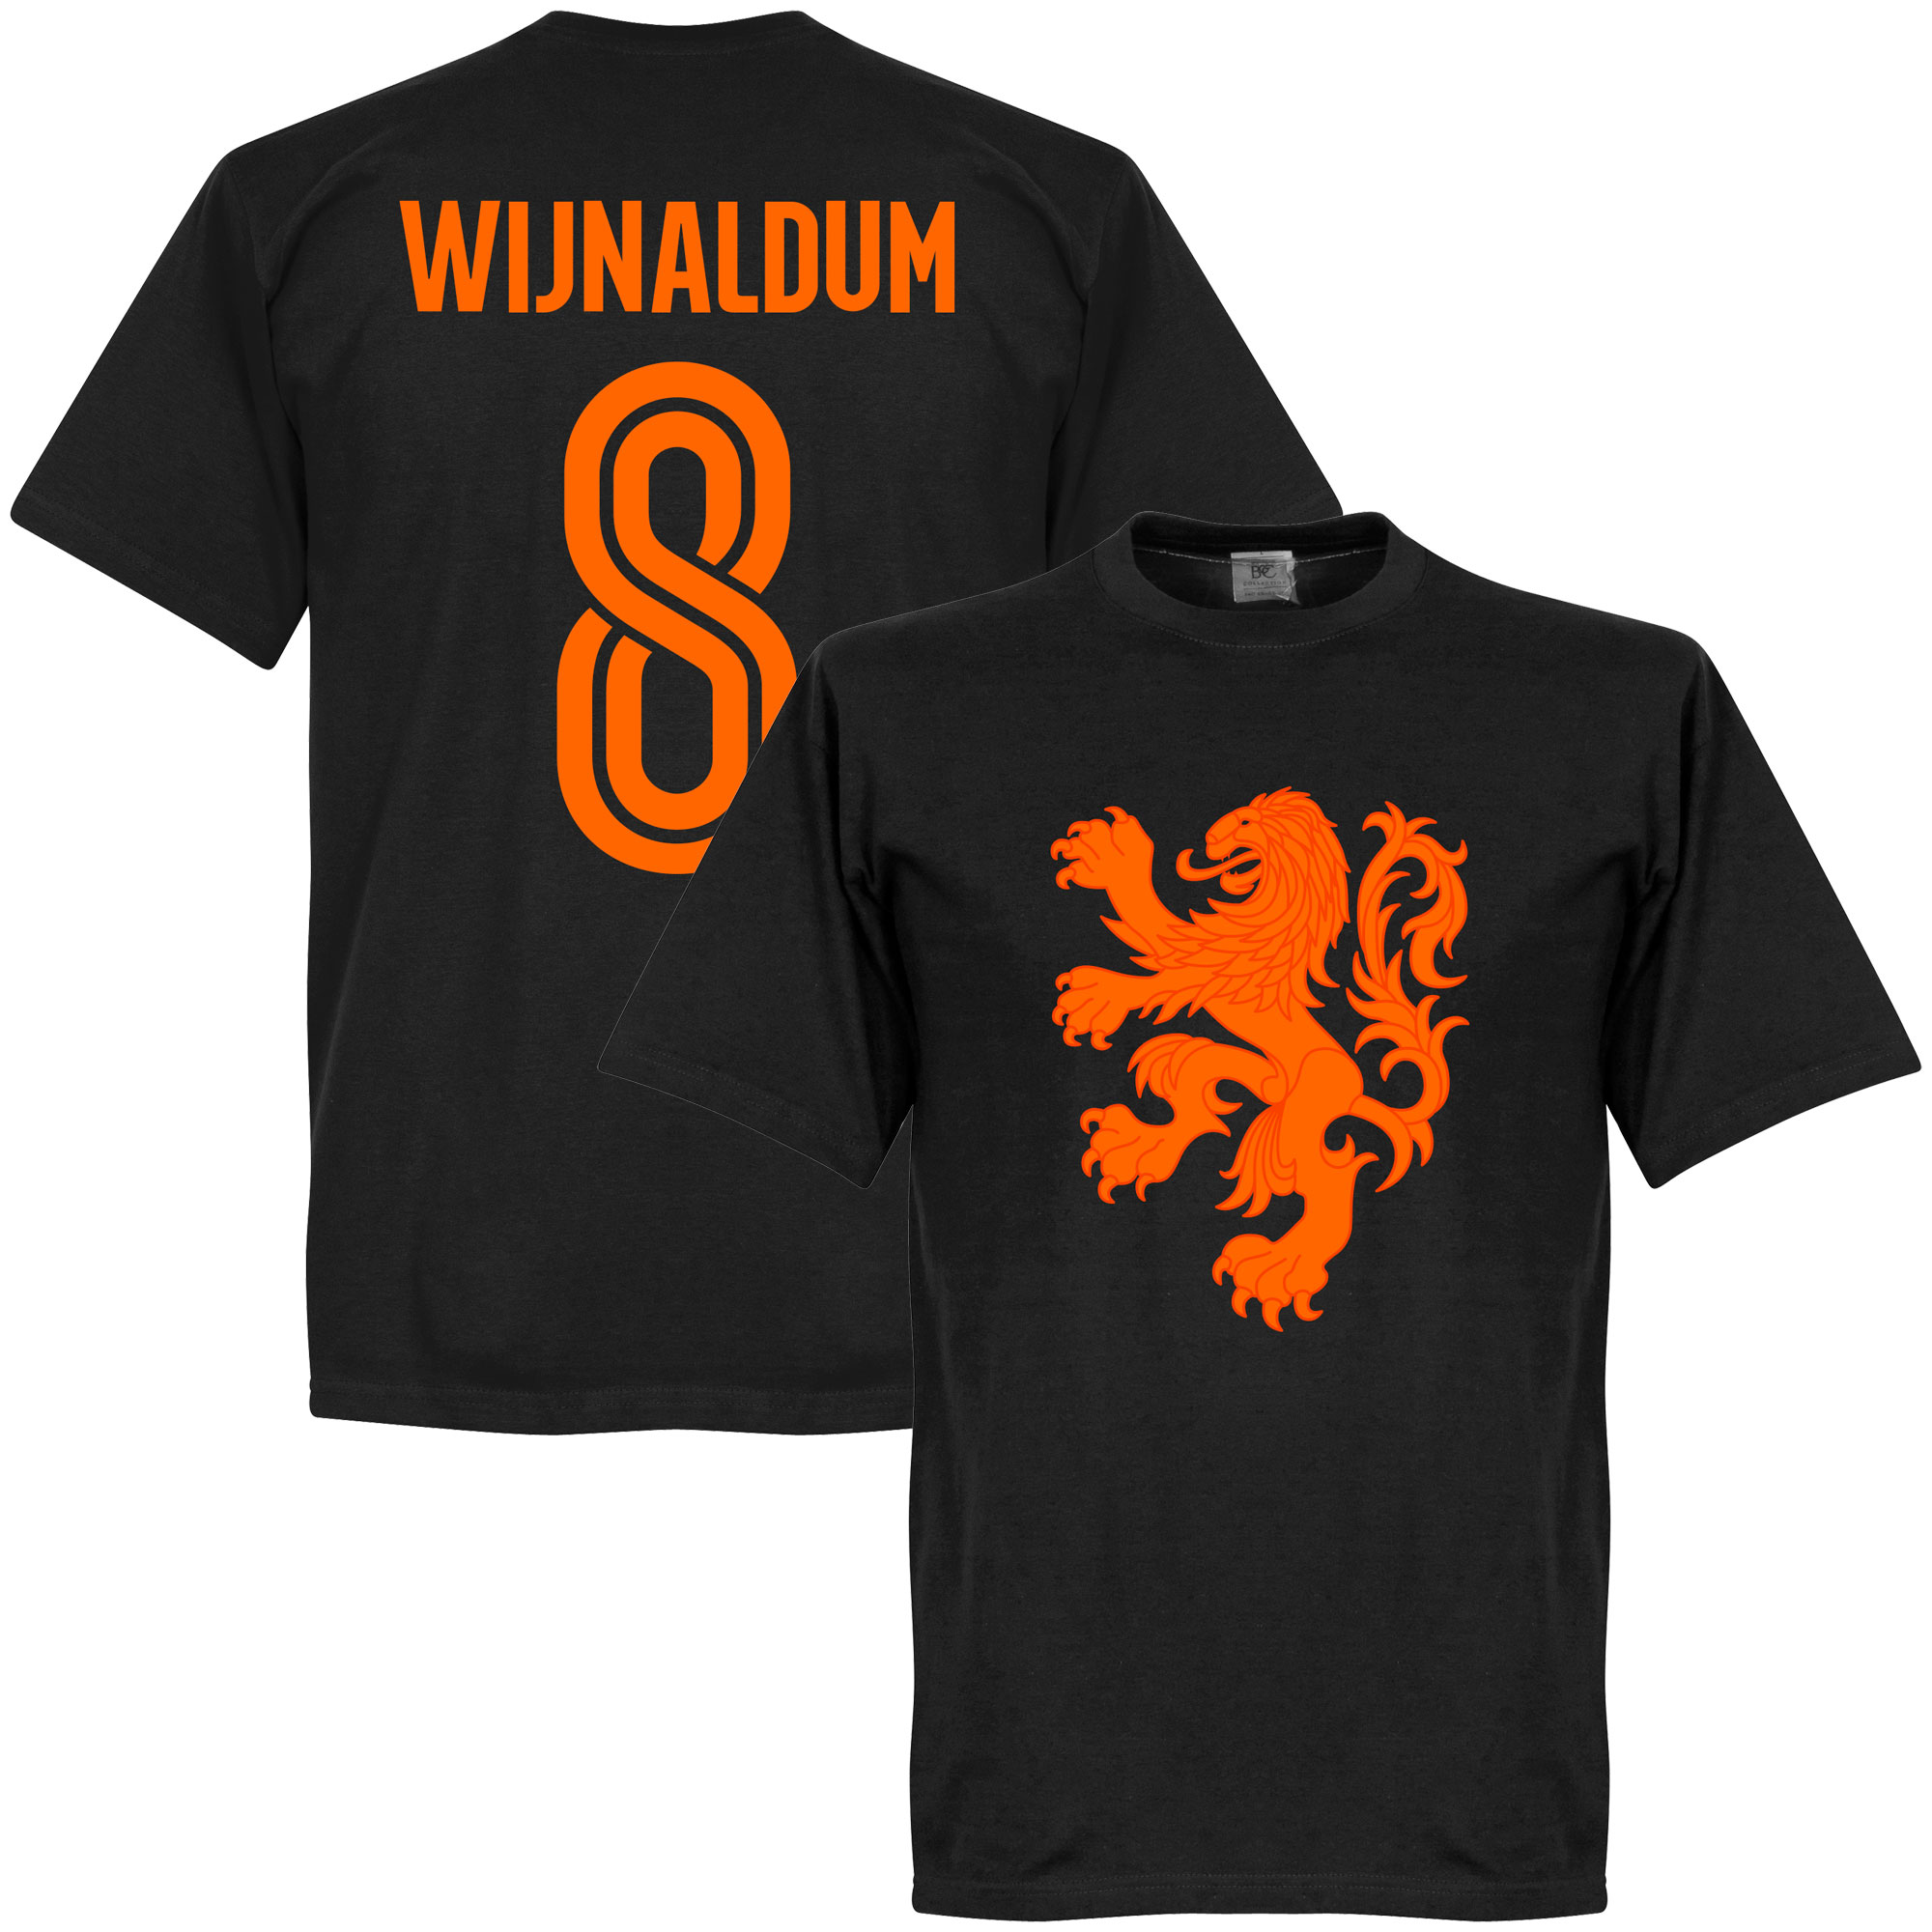 Holland Wijnaldum Lion Tee - Black - XXL